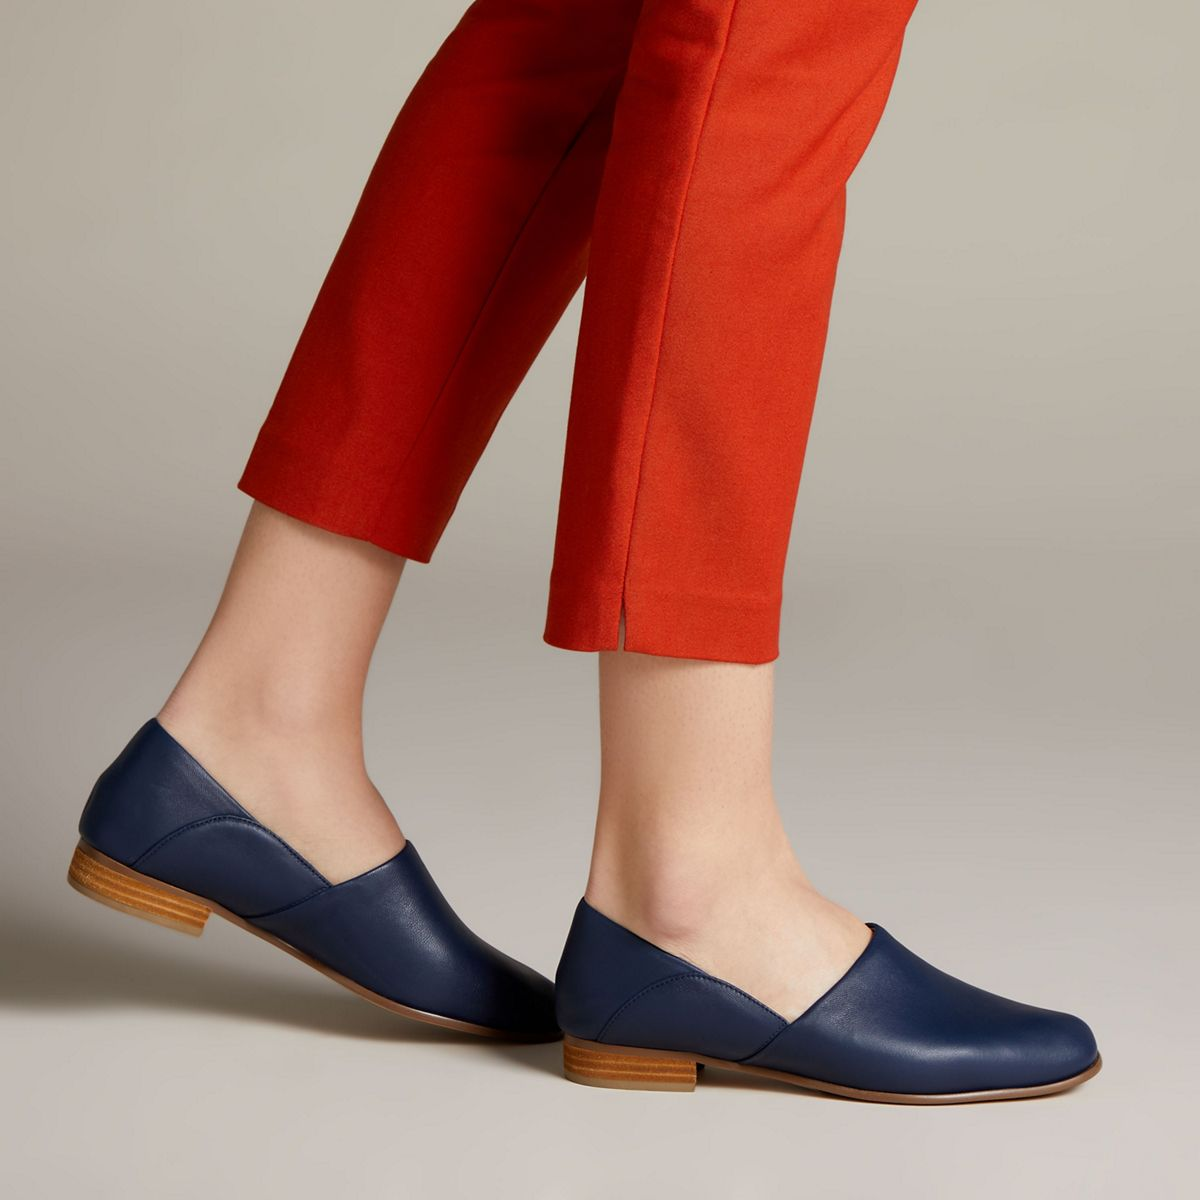 pausa Tarjeta postal Gran engaño  Pure Tone Navy Leather - Clarks Canada Official Site | Clarks Shoes